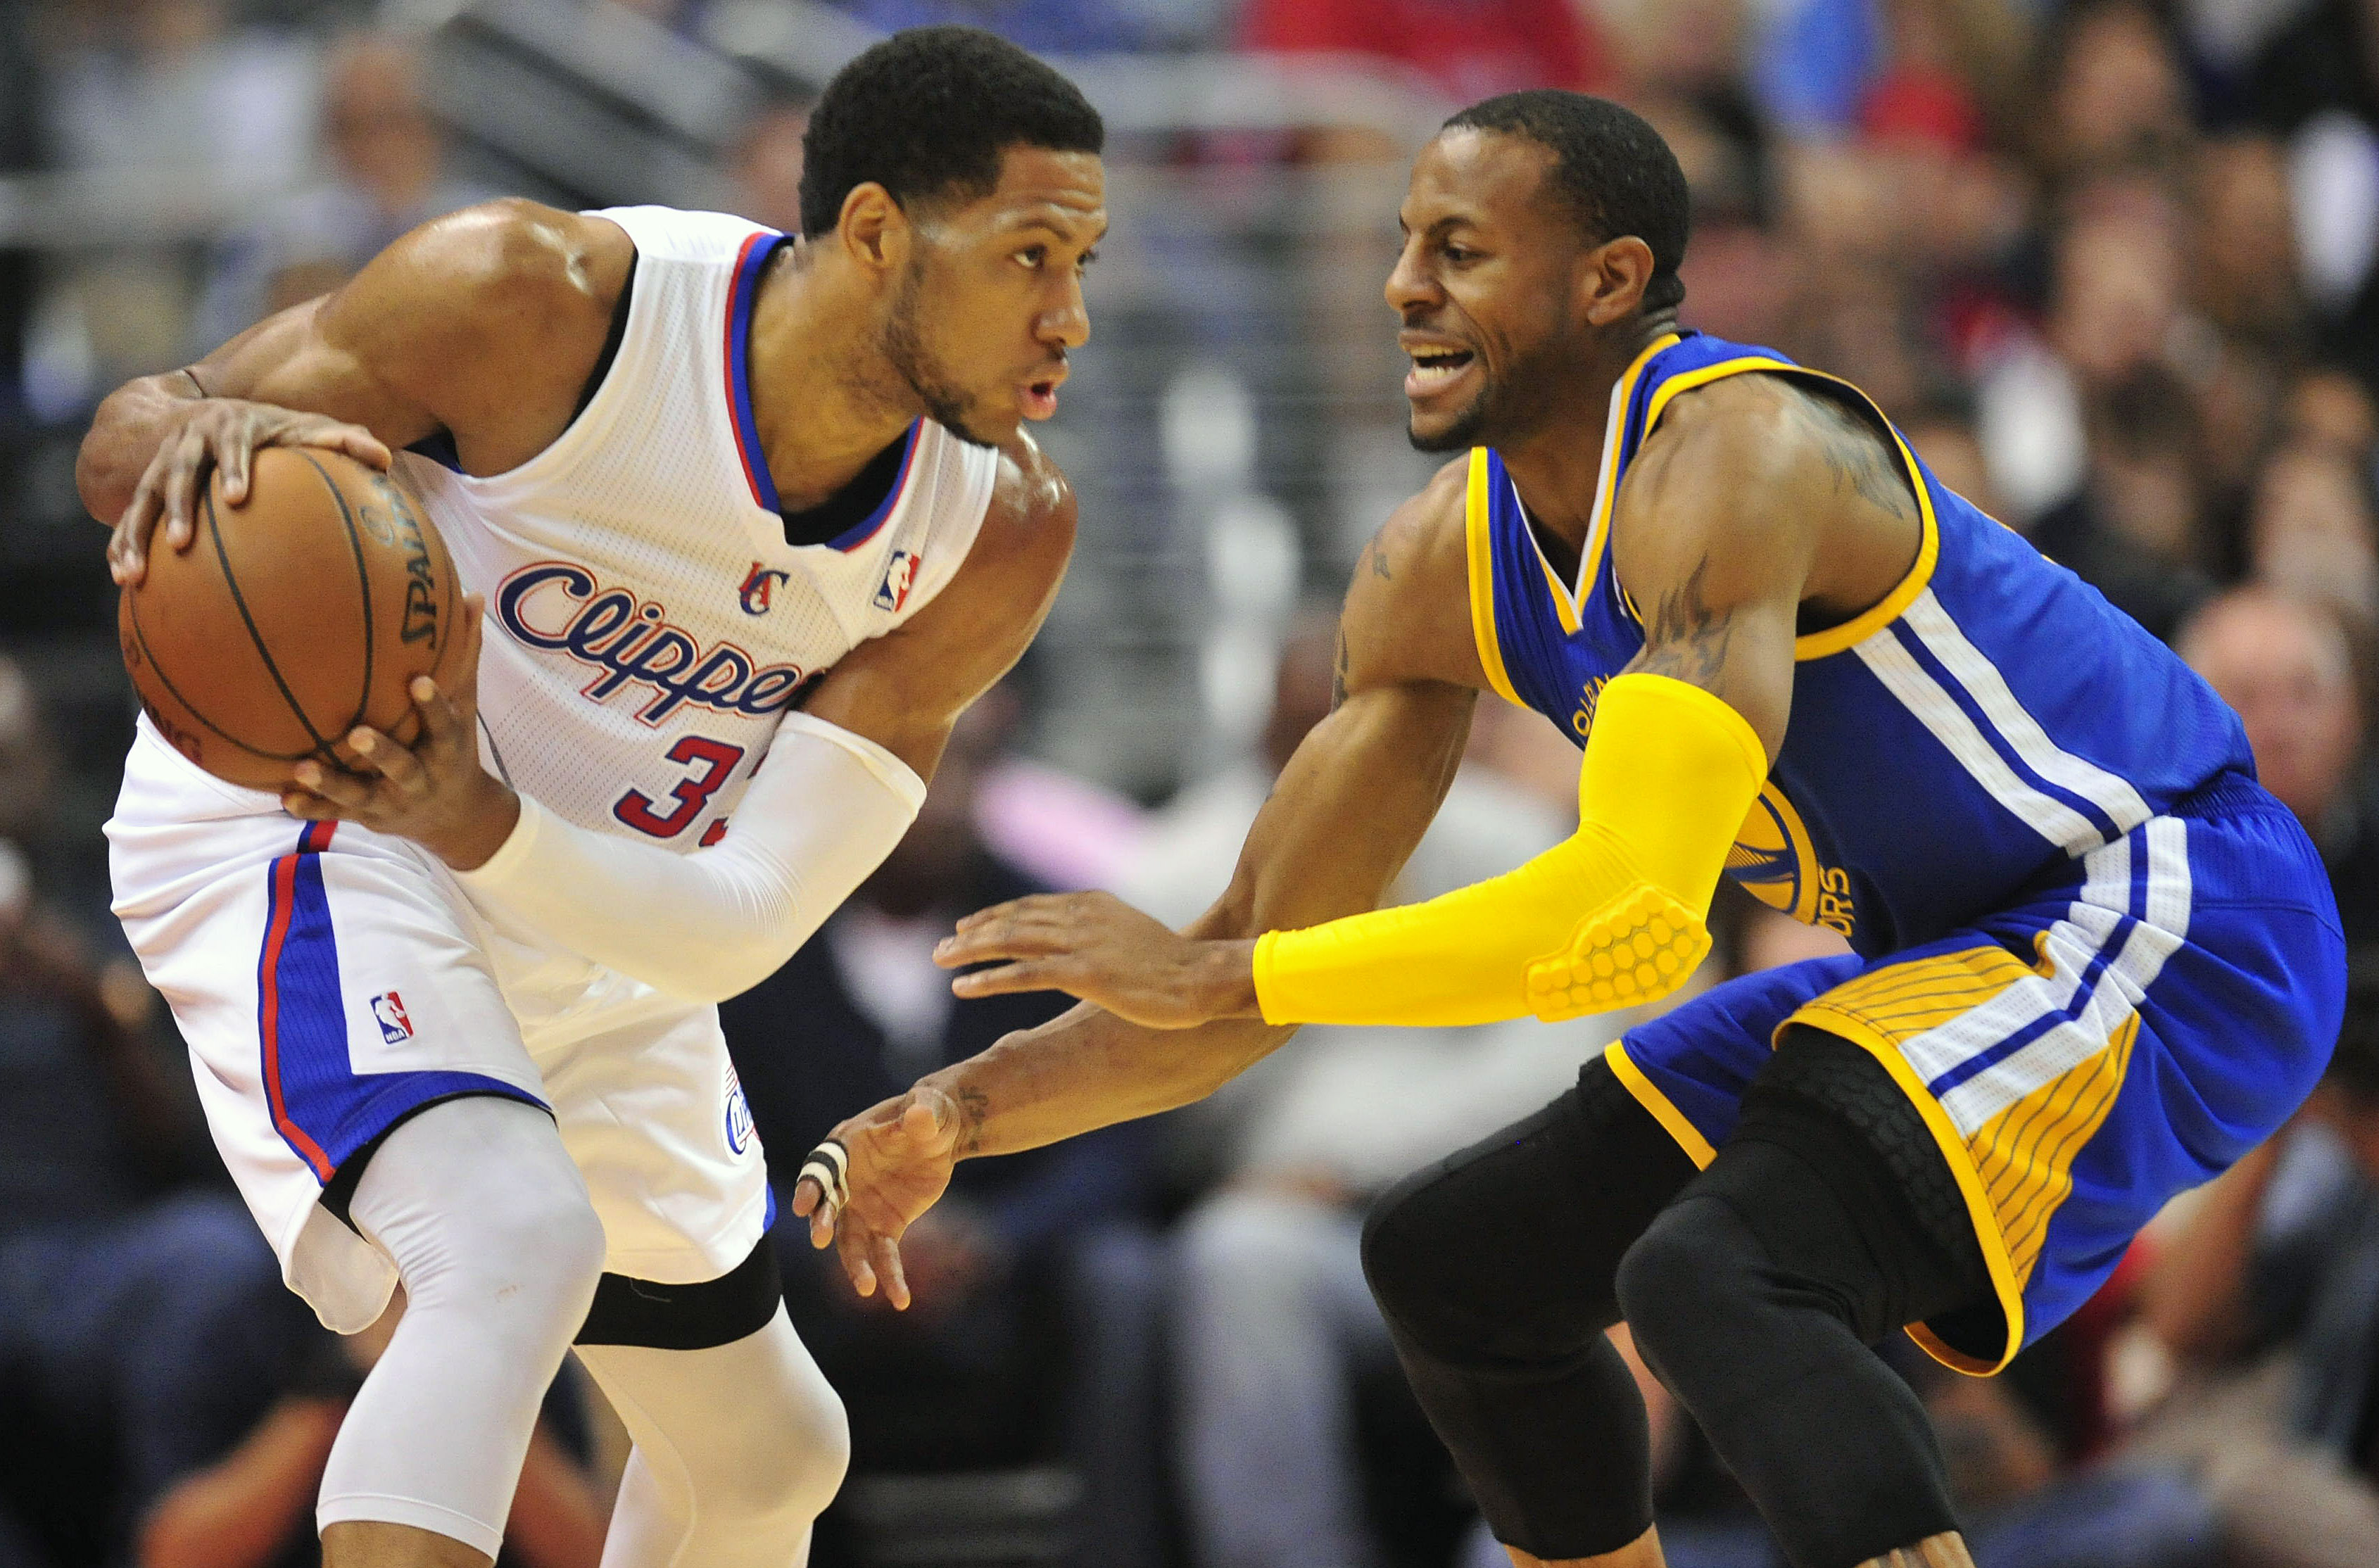 The 10-man rotation, starring Andre Iguodala, who seriously has…